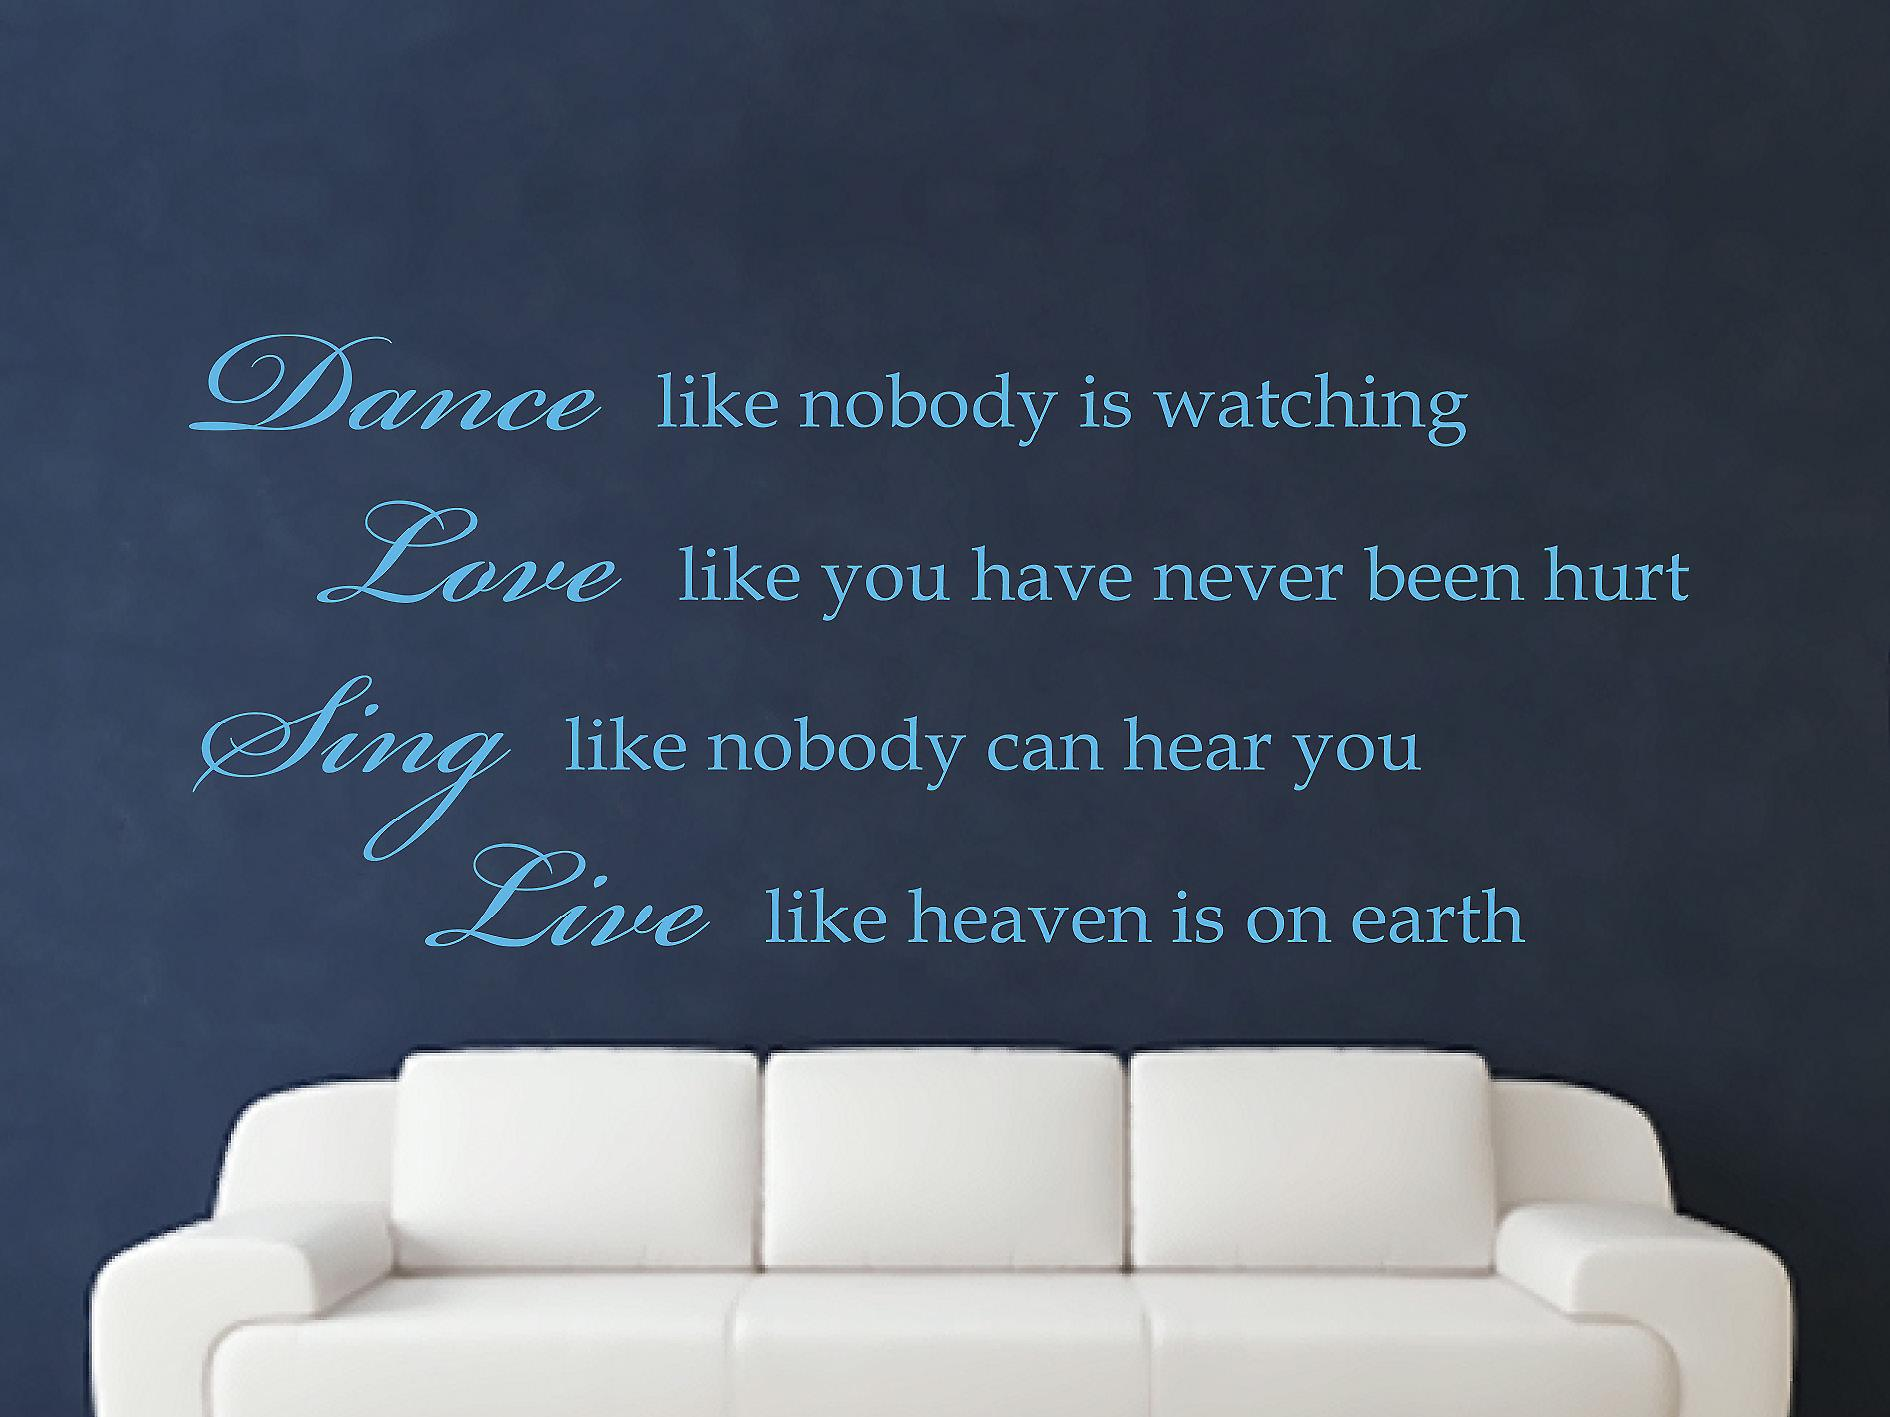 Dance Like Nobody Is Watching Wall Art Sticker - Arctic Blue